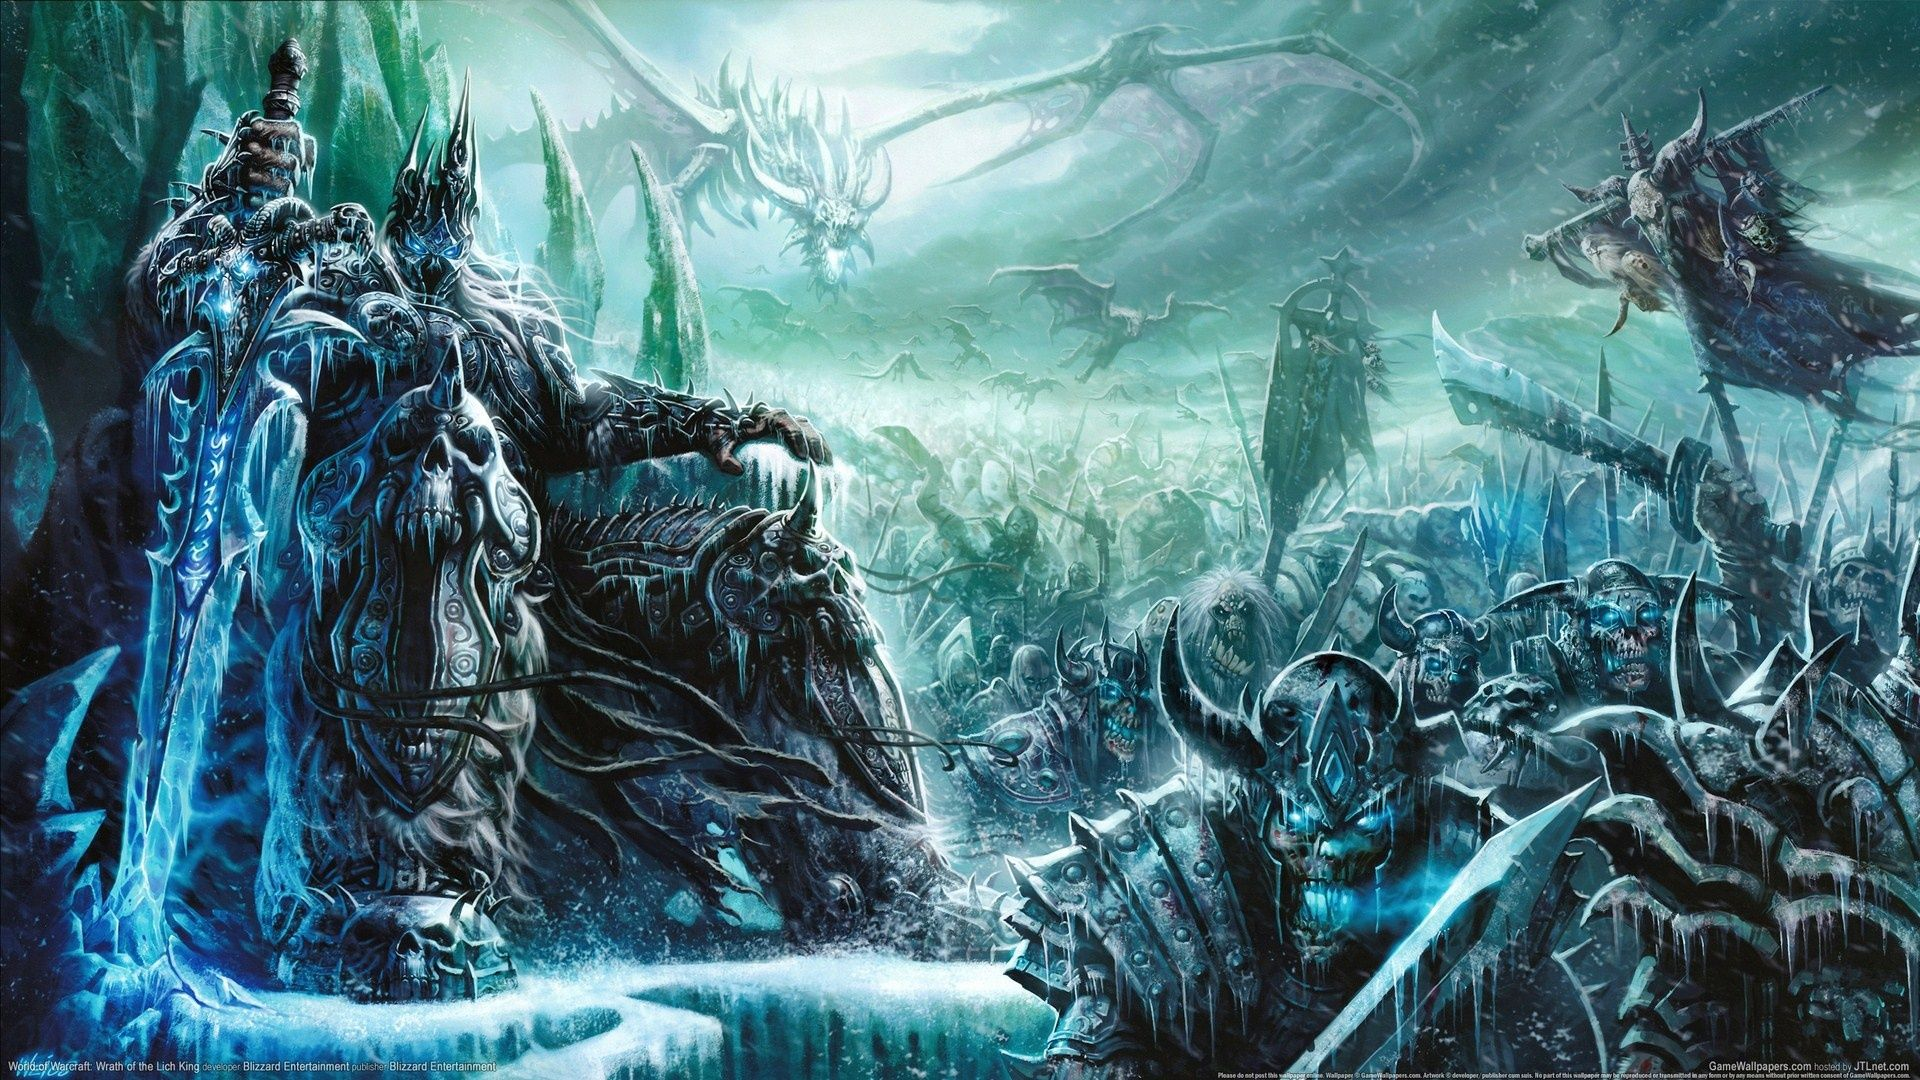 Main Spoilers] The Night King's army is ready   World of warcraft wallpaper, Lich king, World of warcraft